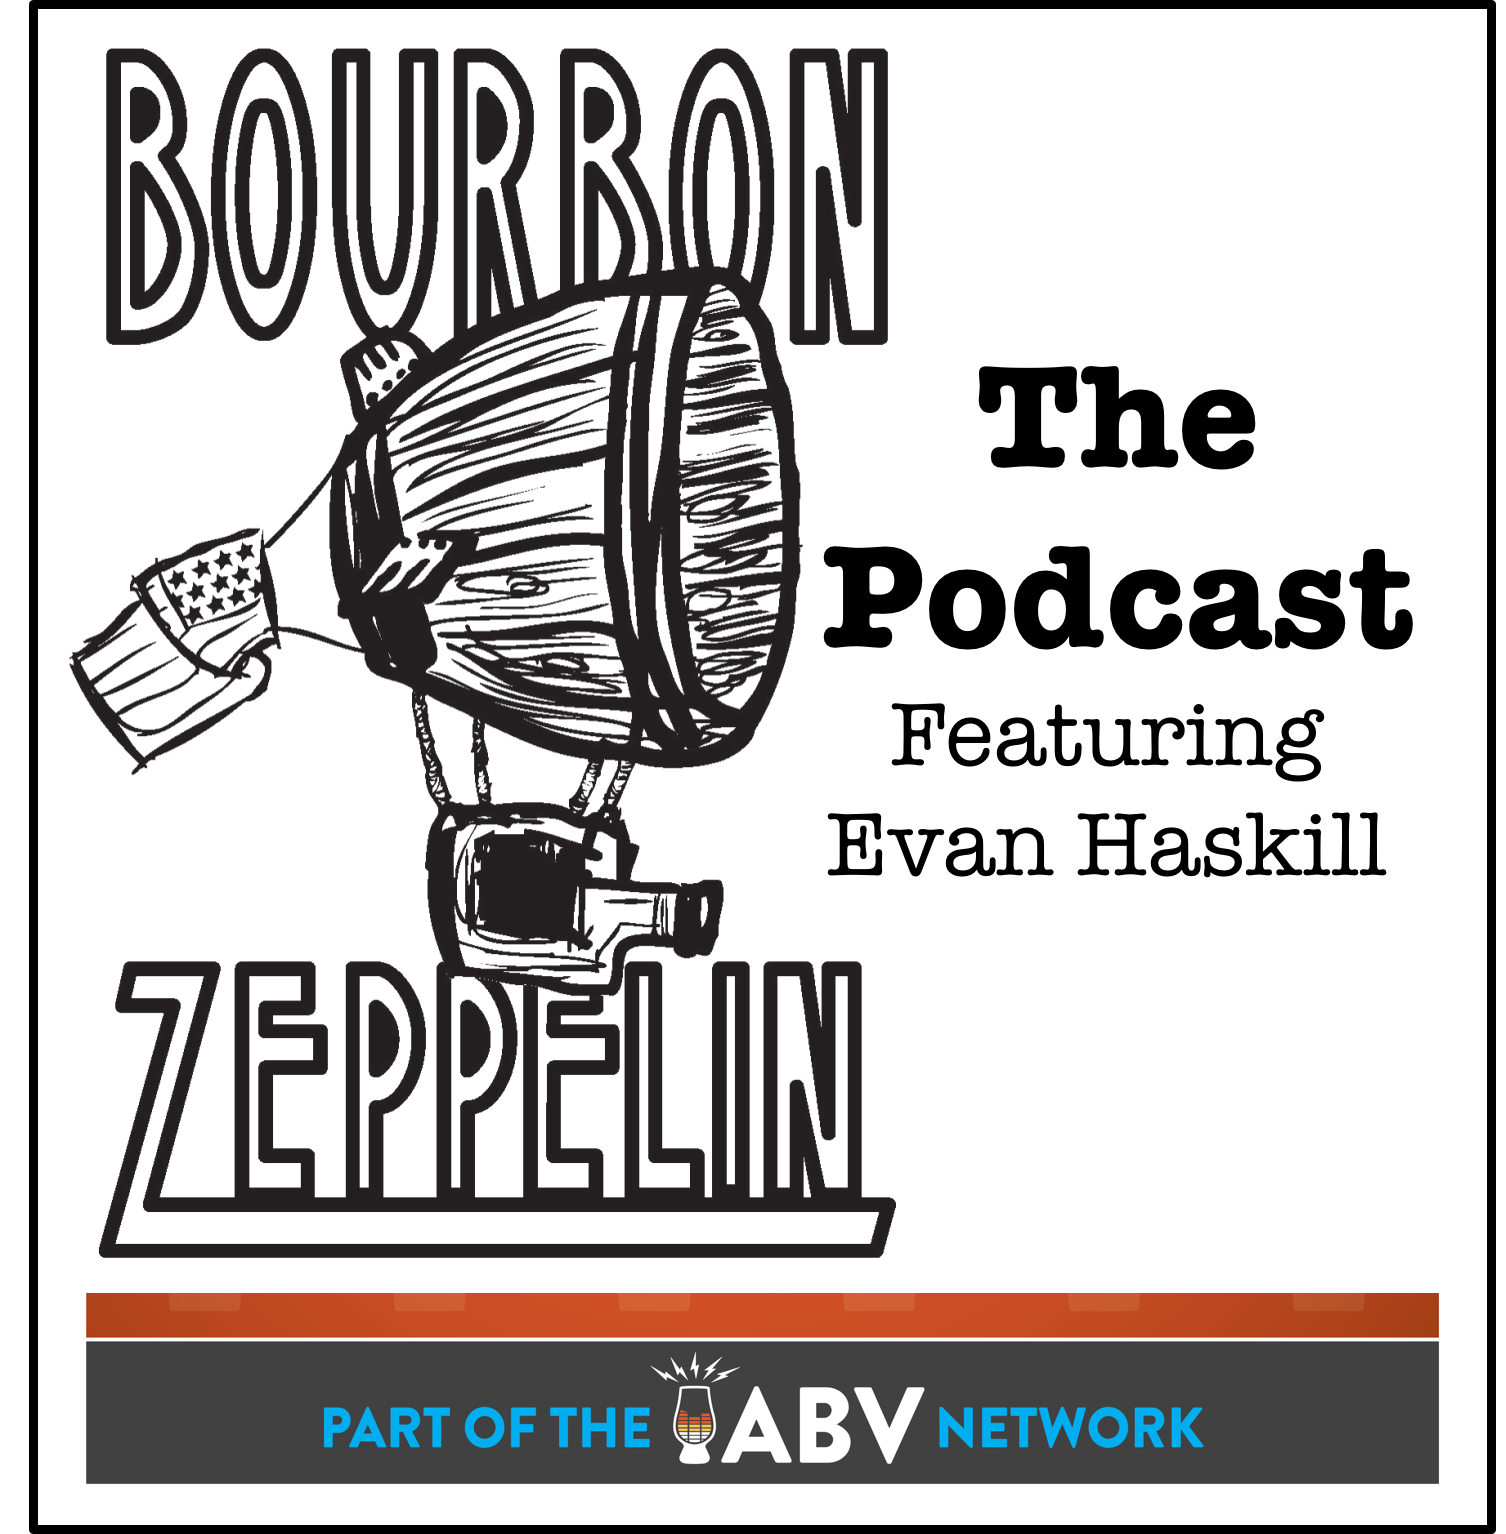 Bourbon Zeppelin the Podcast.png